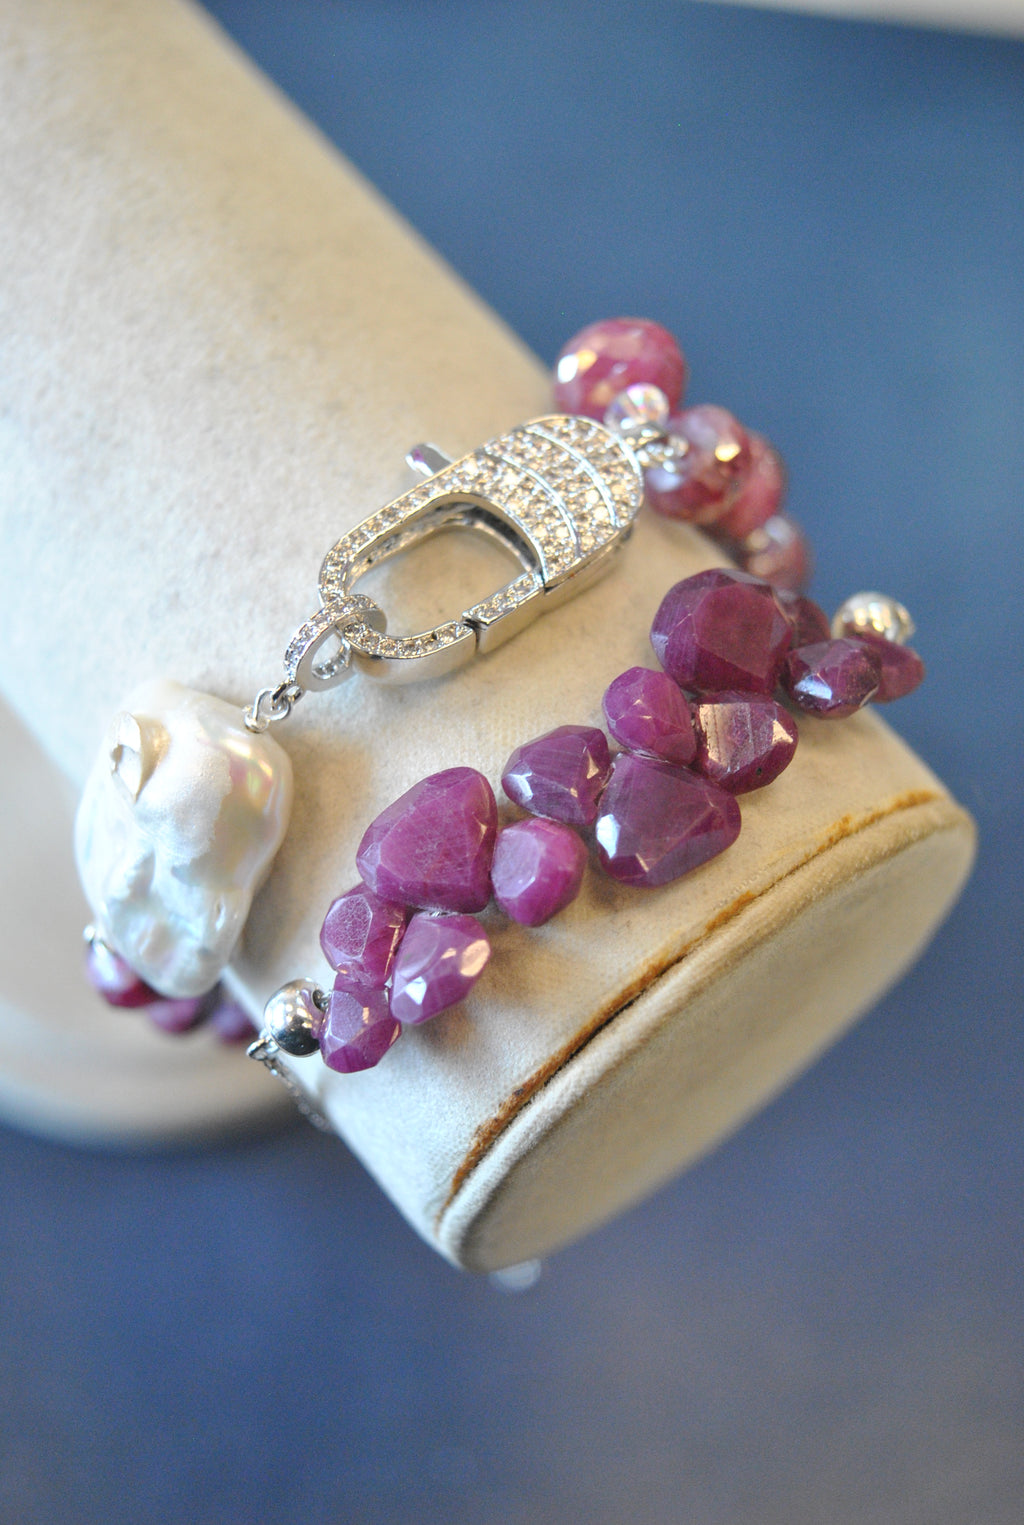 RUBY, RASPBERRY MOONSTONE AND WHITE MOTHER OF PEARLS BRACELET SET